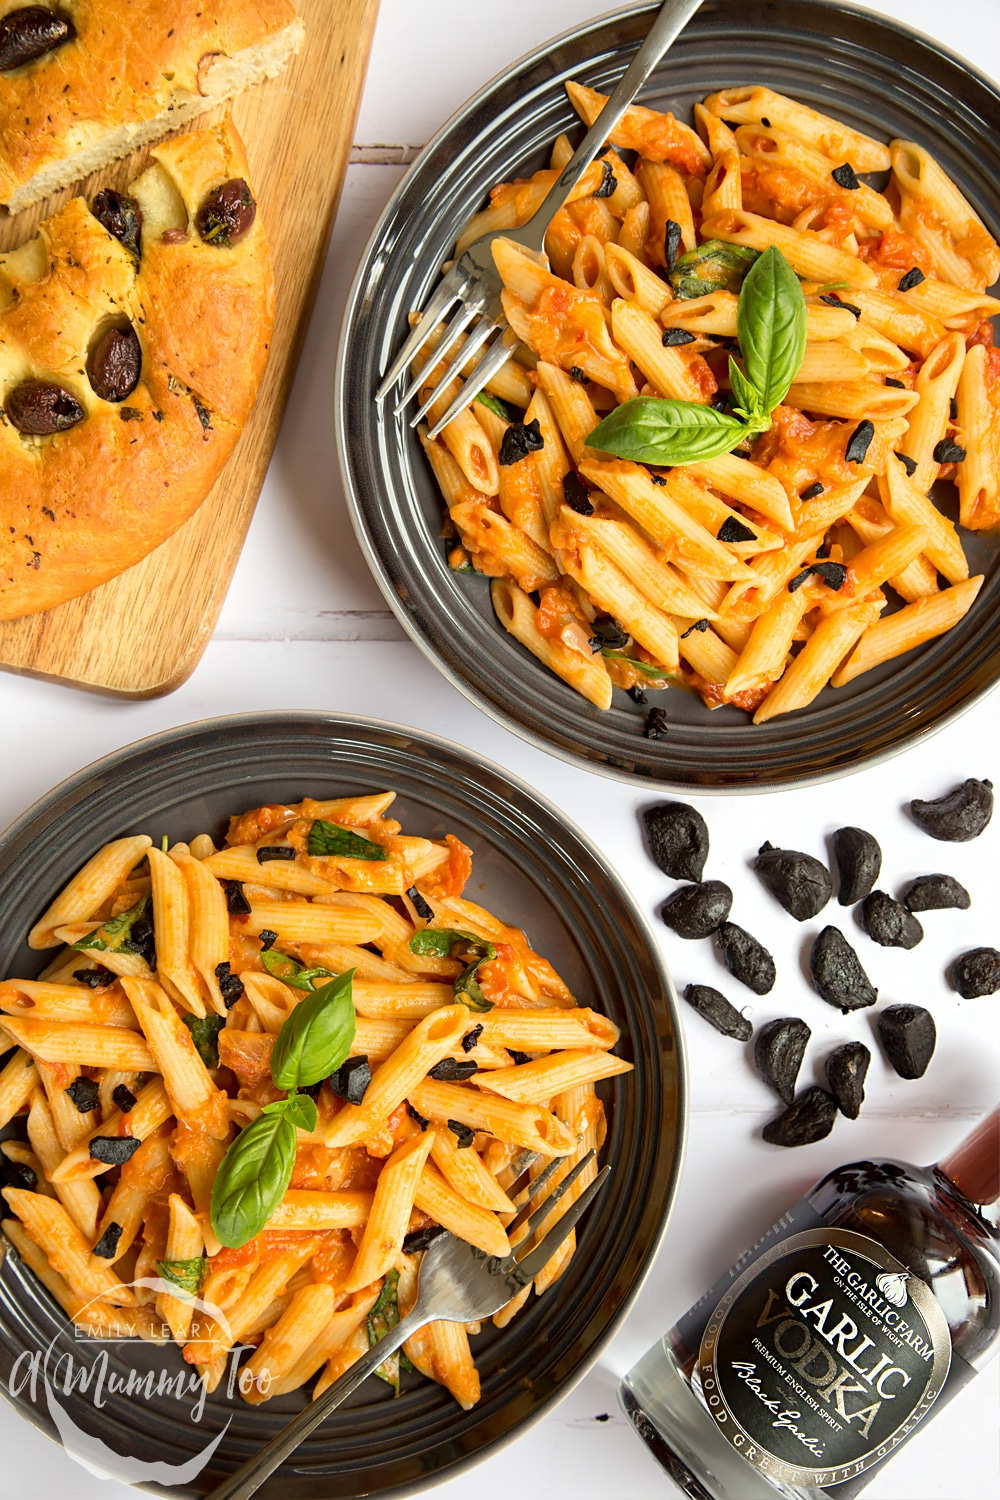 Penne alla black garlic vodka topped with black garlic, served with bread